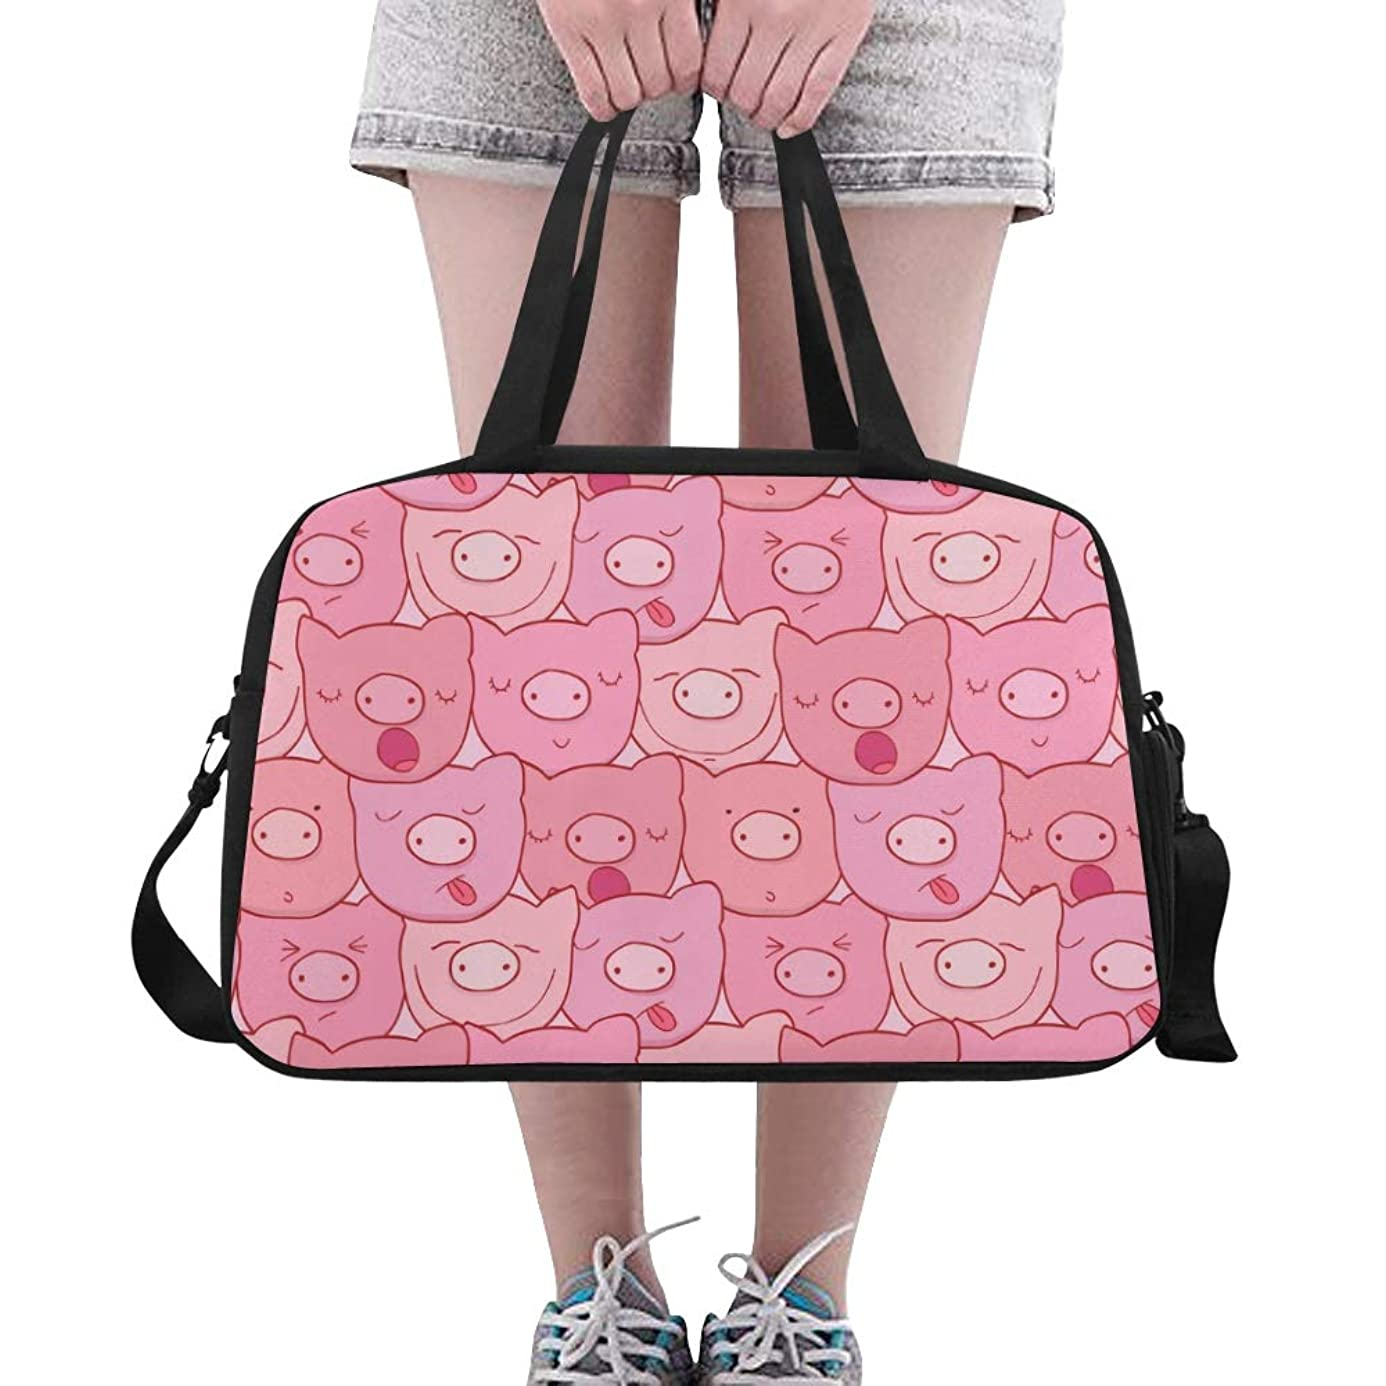 Pink Piggy Pig Head Large Yoga Gym Totes Fitness Handbags Travel Duffel Bags Shoulder Strap Shoe Pouch For Exercise Sport Luggage For Girl Men Womens Outdoor Picnic Dance